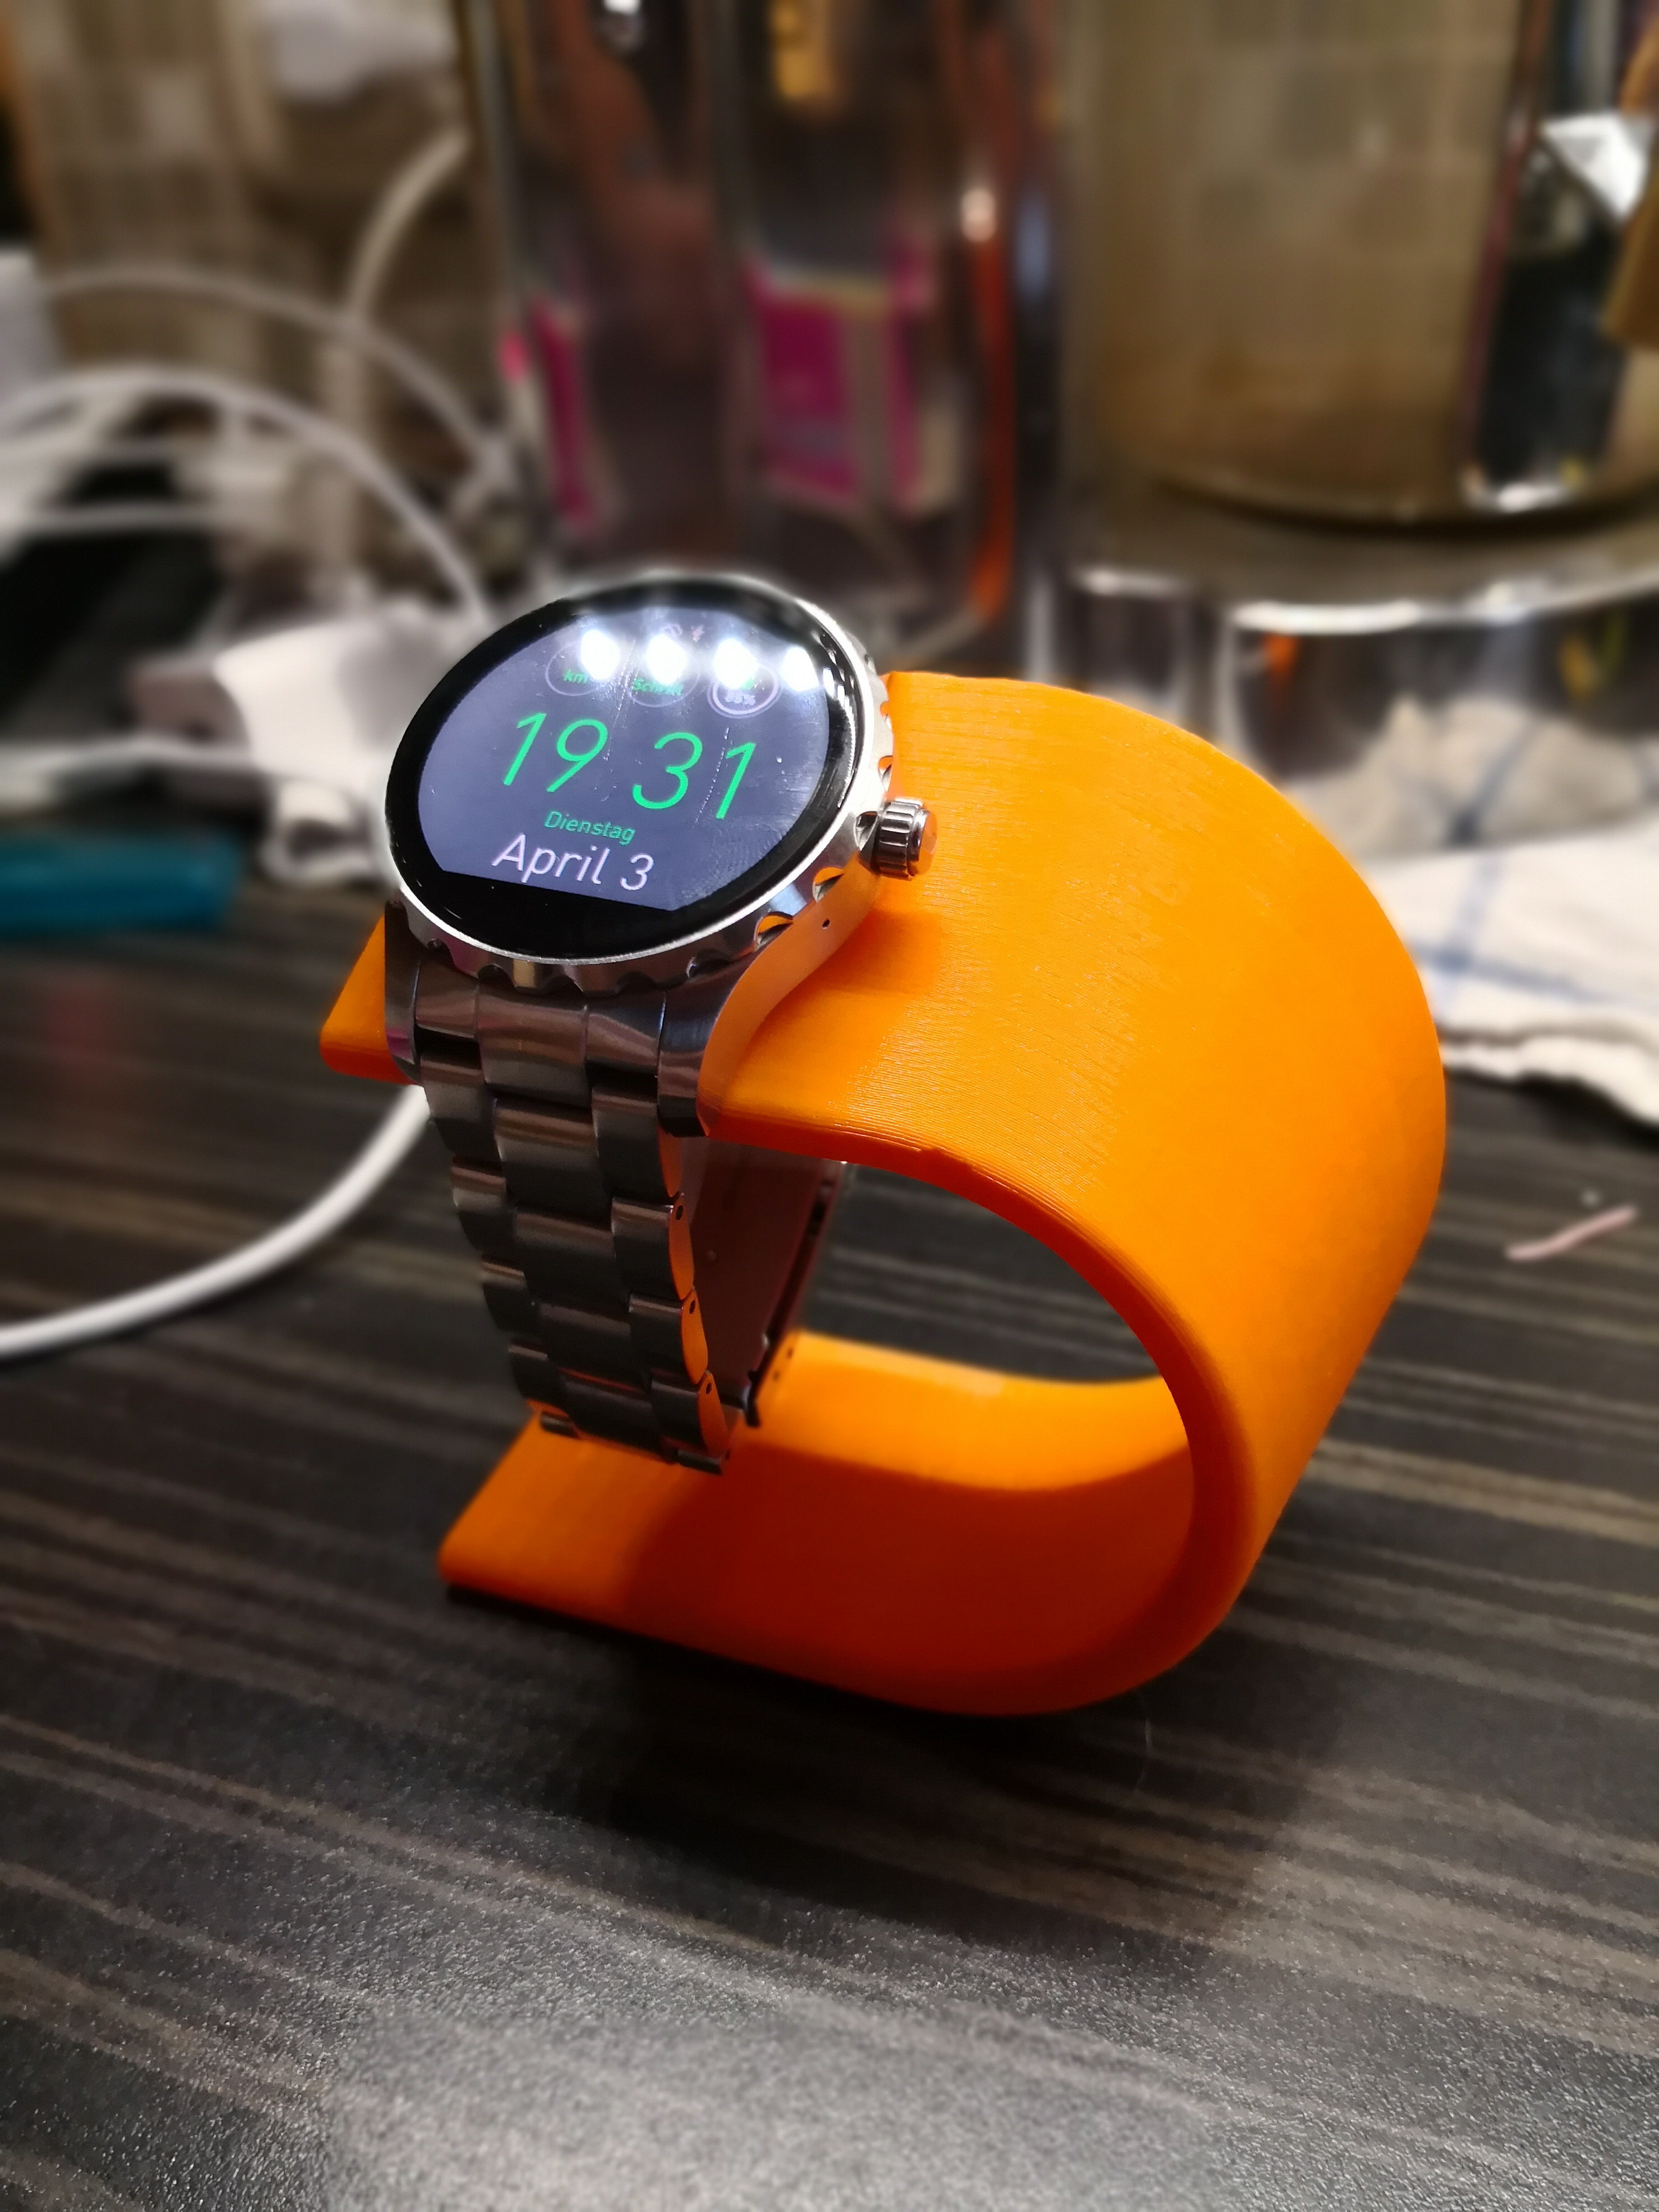 Fossil Q Marshal Smartwatch Charging Stand By Renkforce Made Uploaded Apr 3 2018 View Original